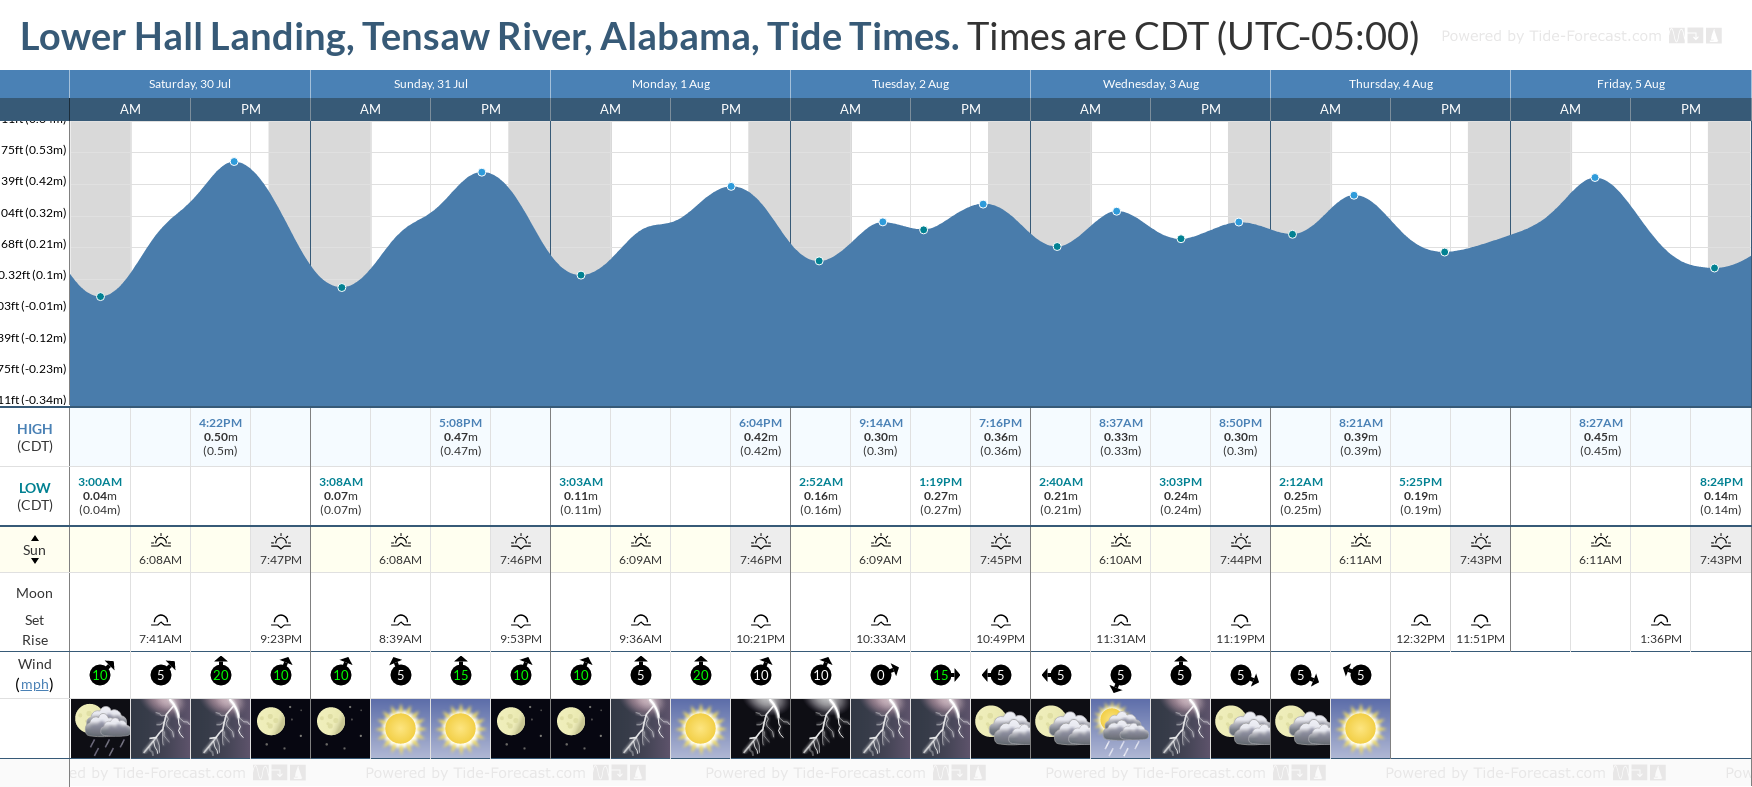 Lower Hall Landing, Tensaw River, Alabama Tide Chart including high and low tide tide times for the next 7 days